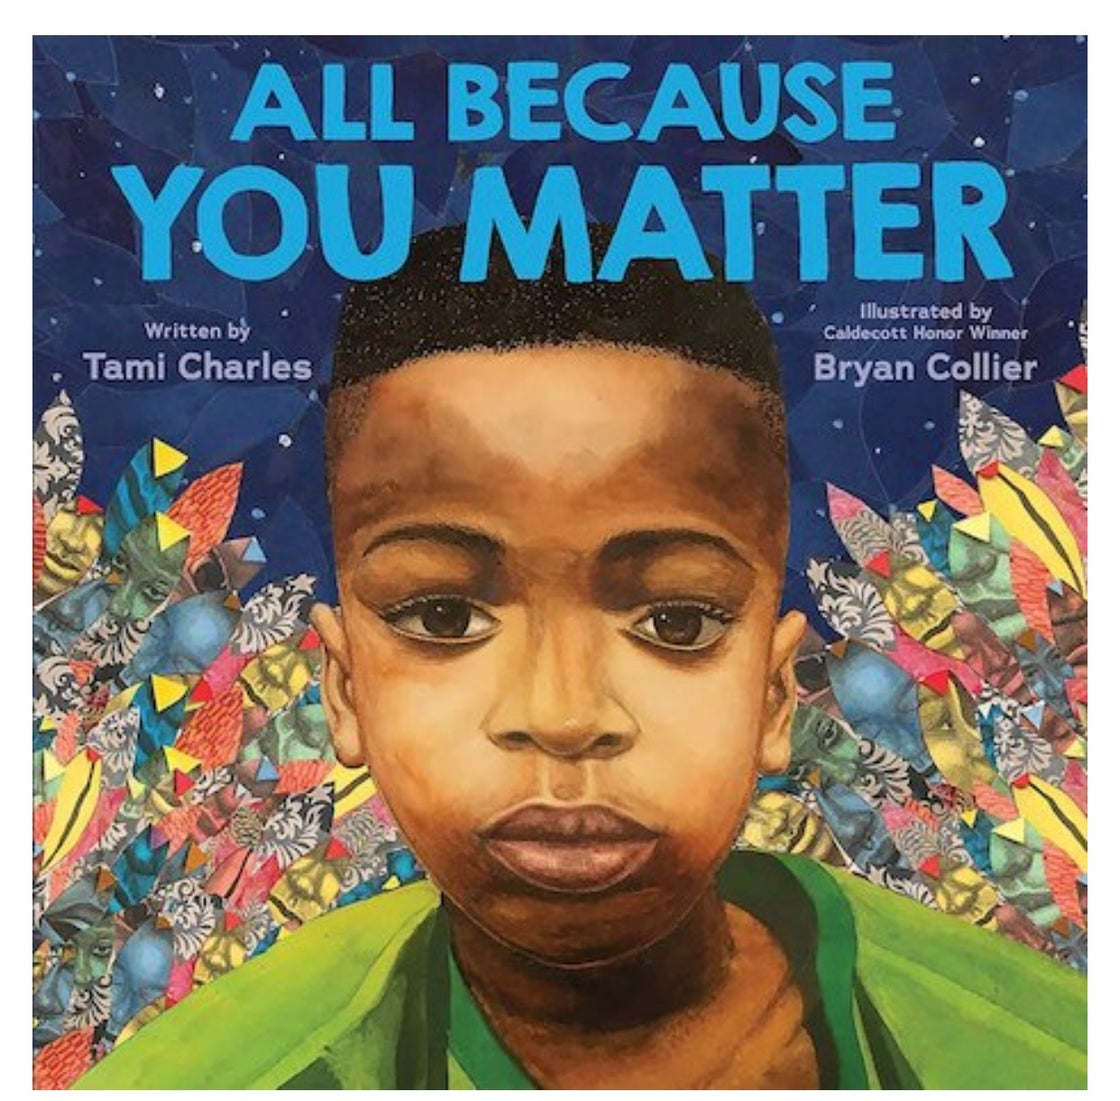 Image of All Because You Matter